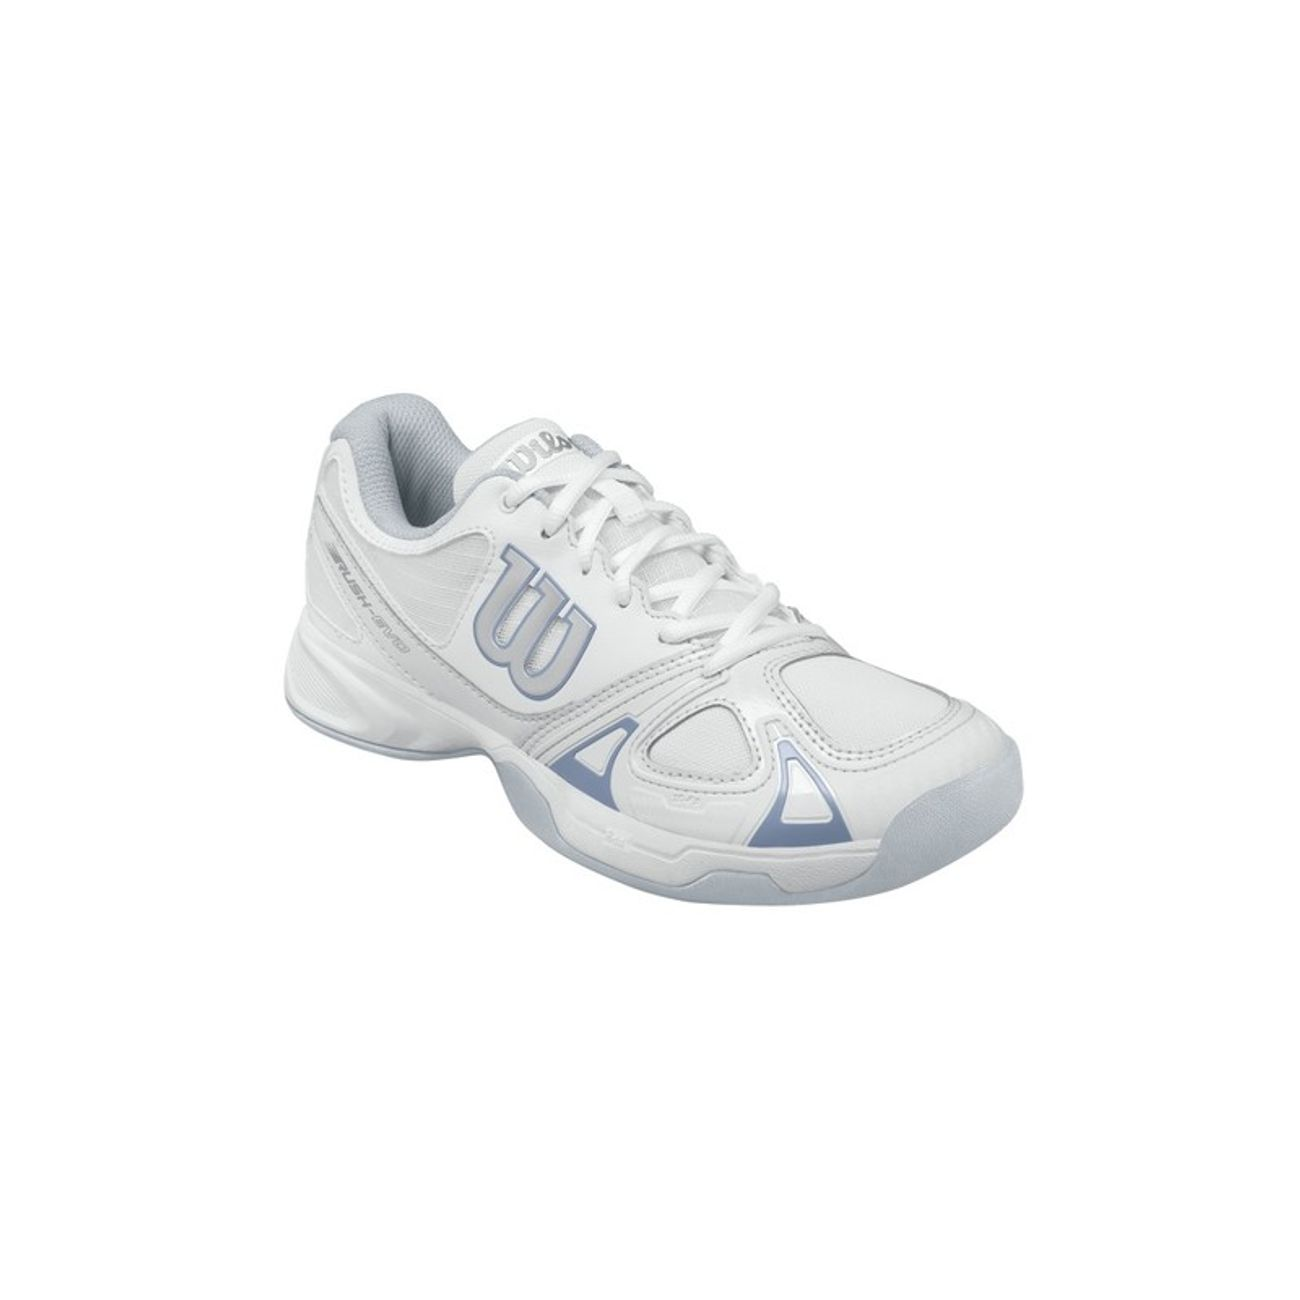 Tennis adulte WILSON Adidas Barricade Club xJ Tallas - 6